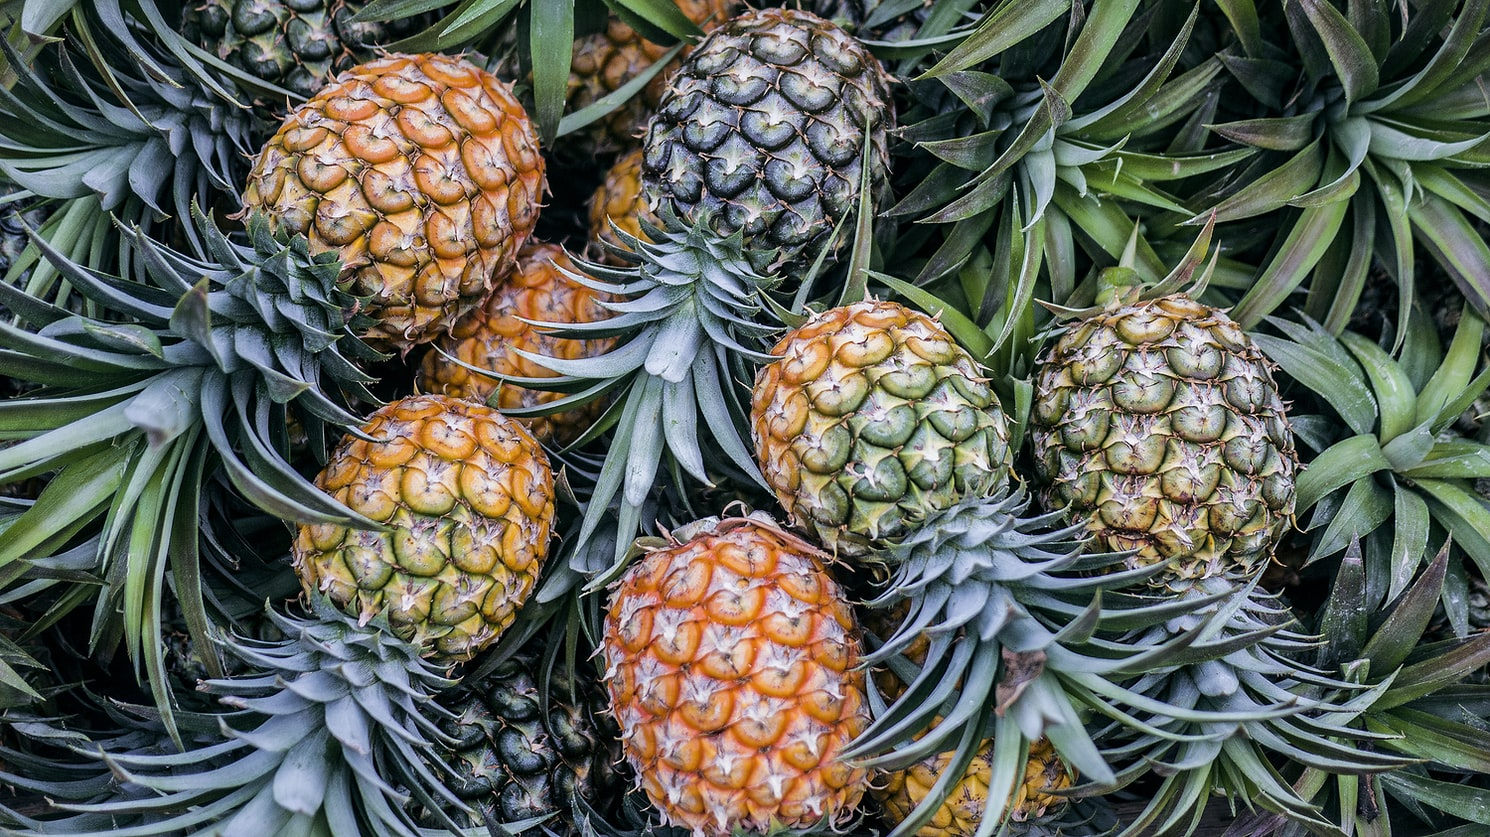 How long does it take for a pineapple to grow